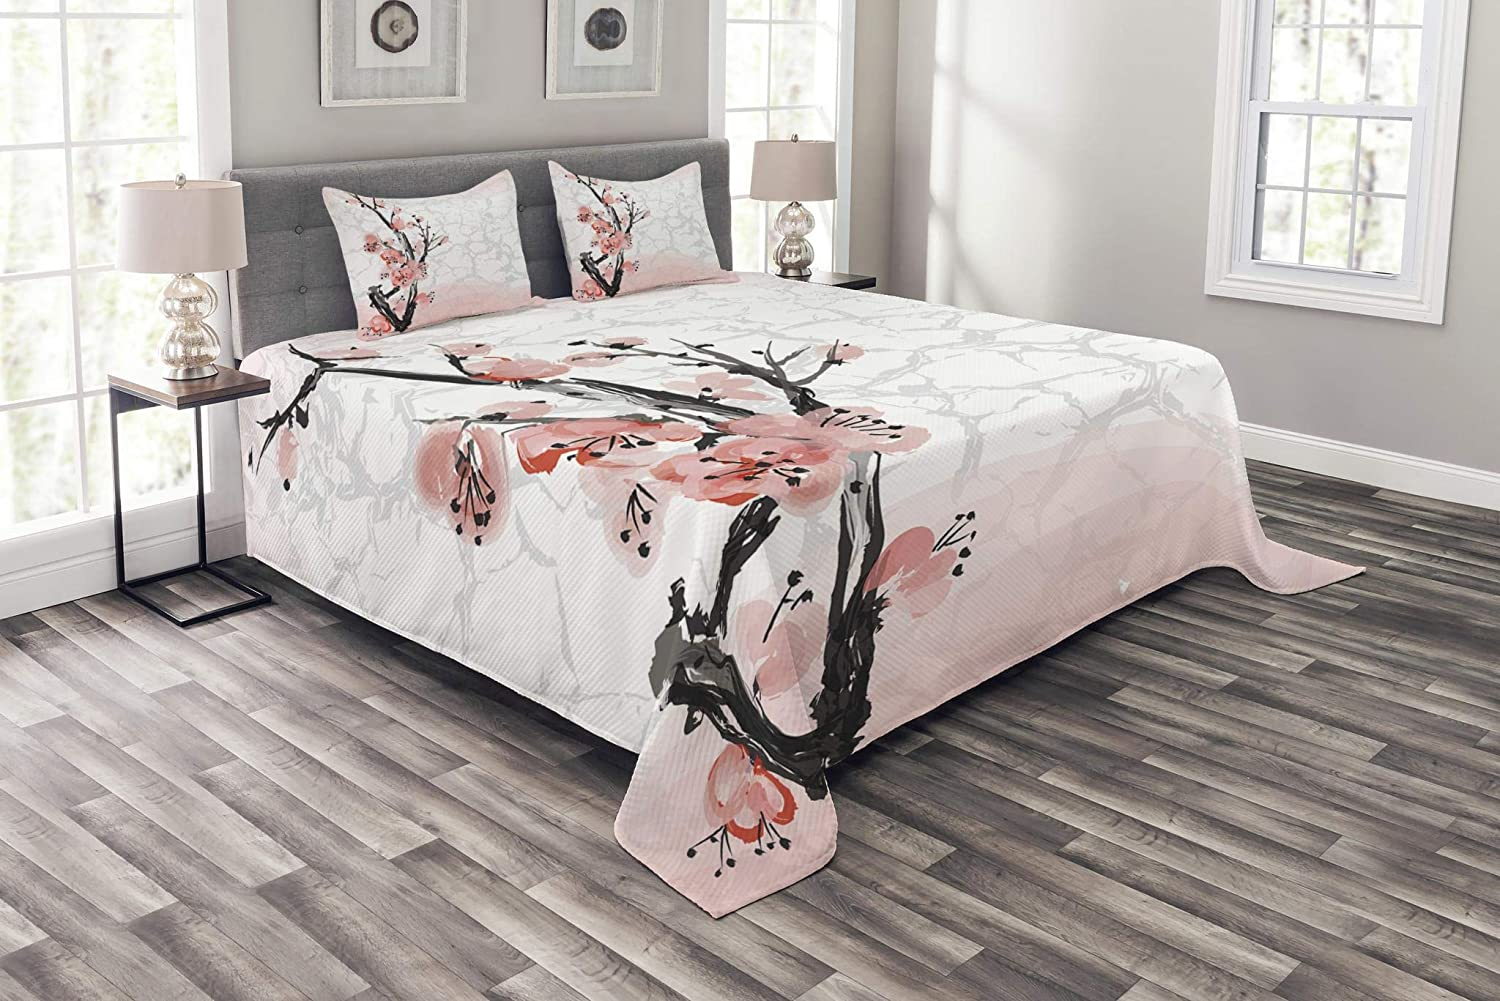 Lunarable Floral Bedspread, Japanese Cherry Blossom Sakura Tree Branch Soft Pastel Watercolor Print, Decorative Quilted 3 Piece Coverlet Set with 2 Pillow Shams, Queen Size, Pink Coral